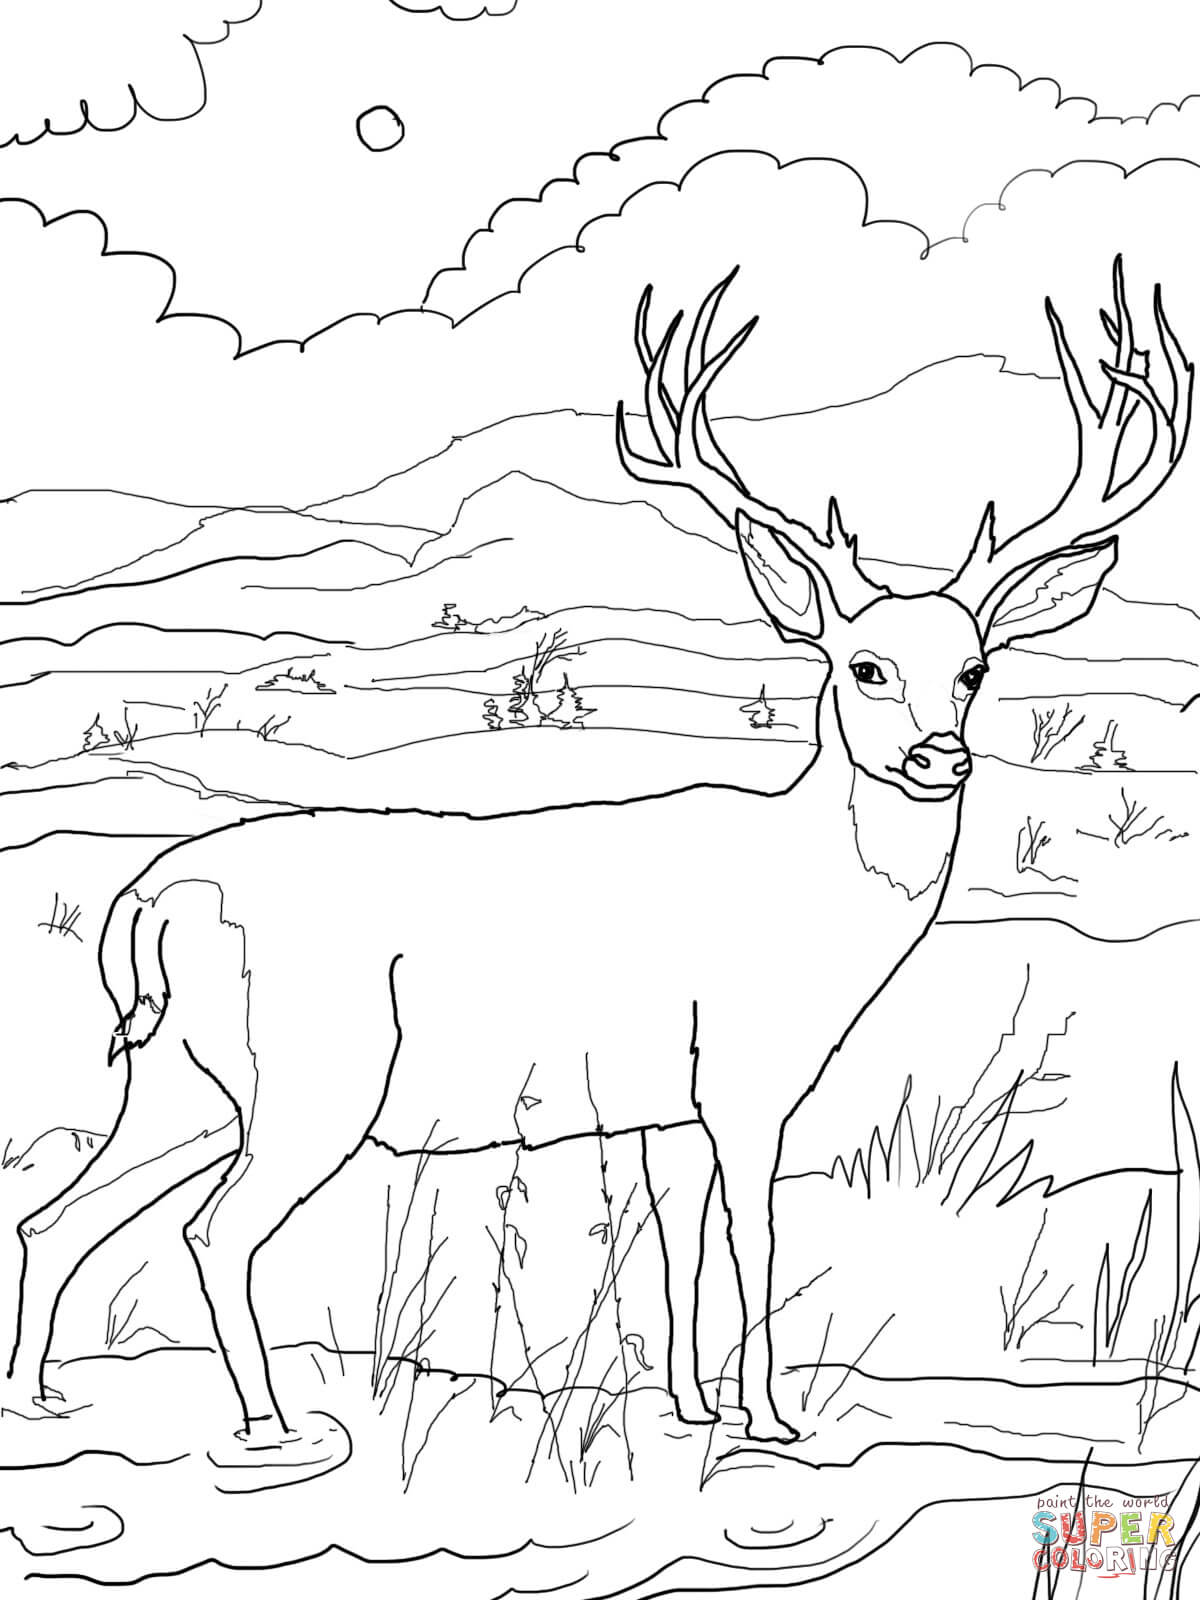 1200x1600 Fortune Deer Colouring Pages Blacktail Mule Co